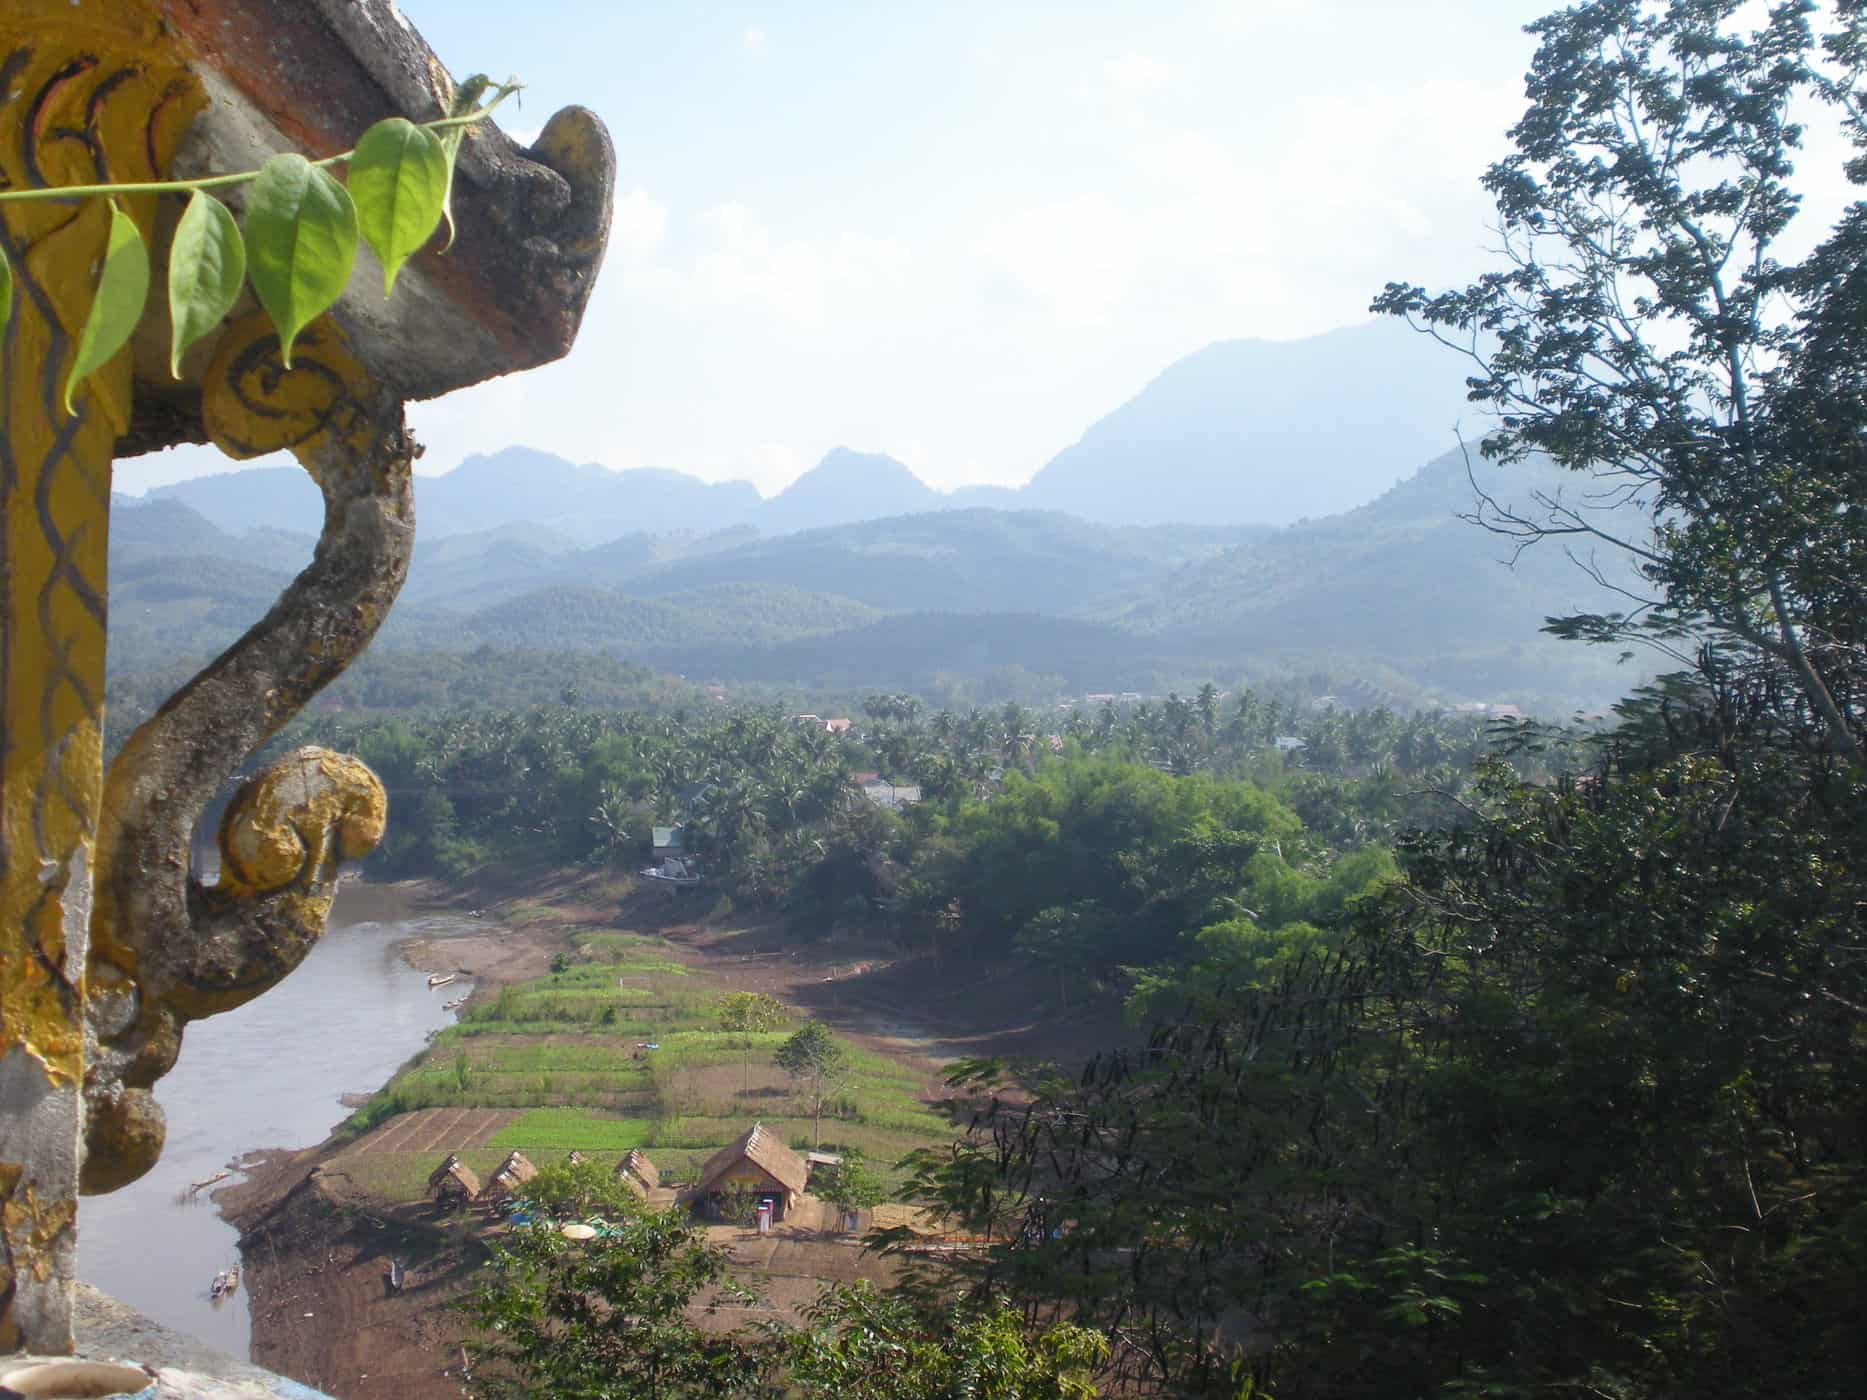 Views from the climb up Mount Phousi, Luang Prabang.